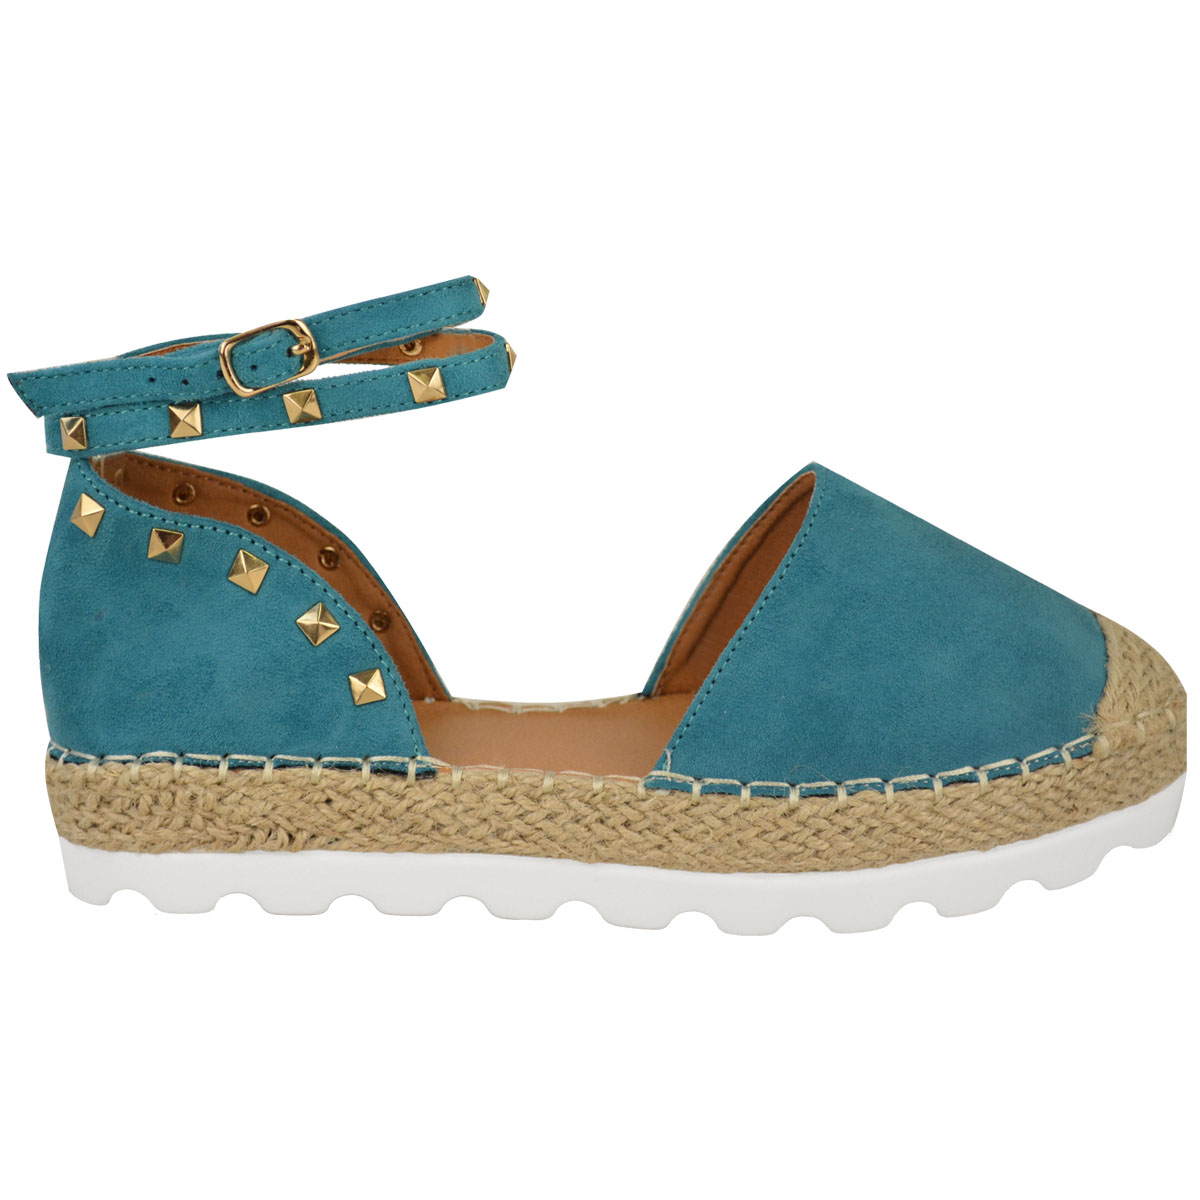 Womens-Ladies-Espadrilles-Flat-Pom-Pom-Sandals-Slip-On-Strappy-Comfy-Size-Shoes thumbnail 15